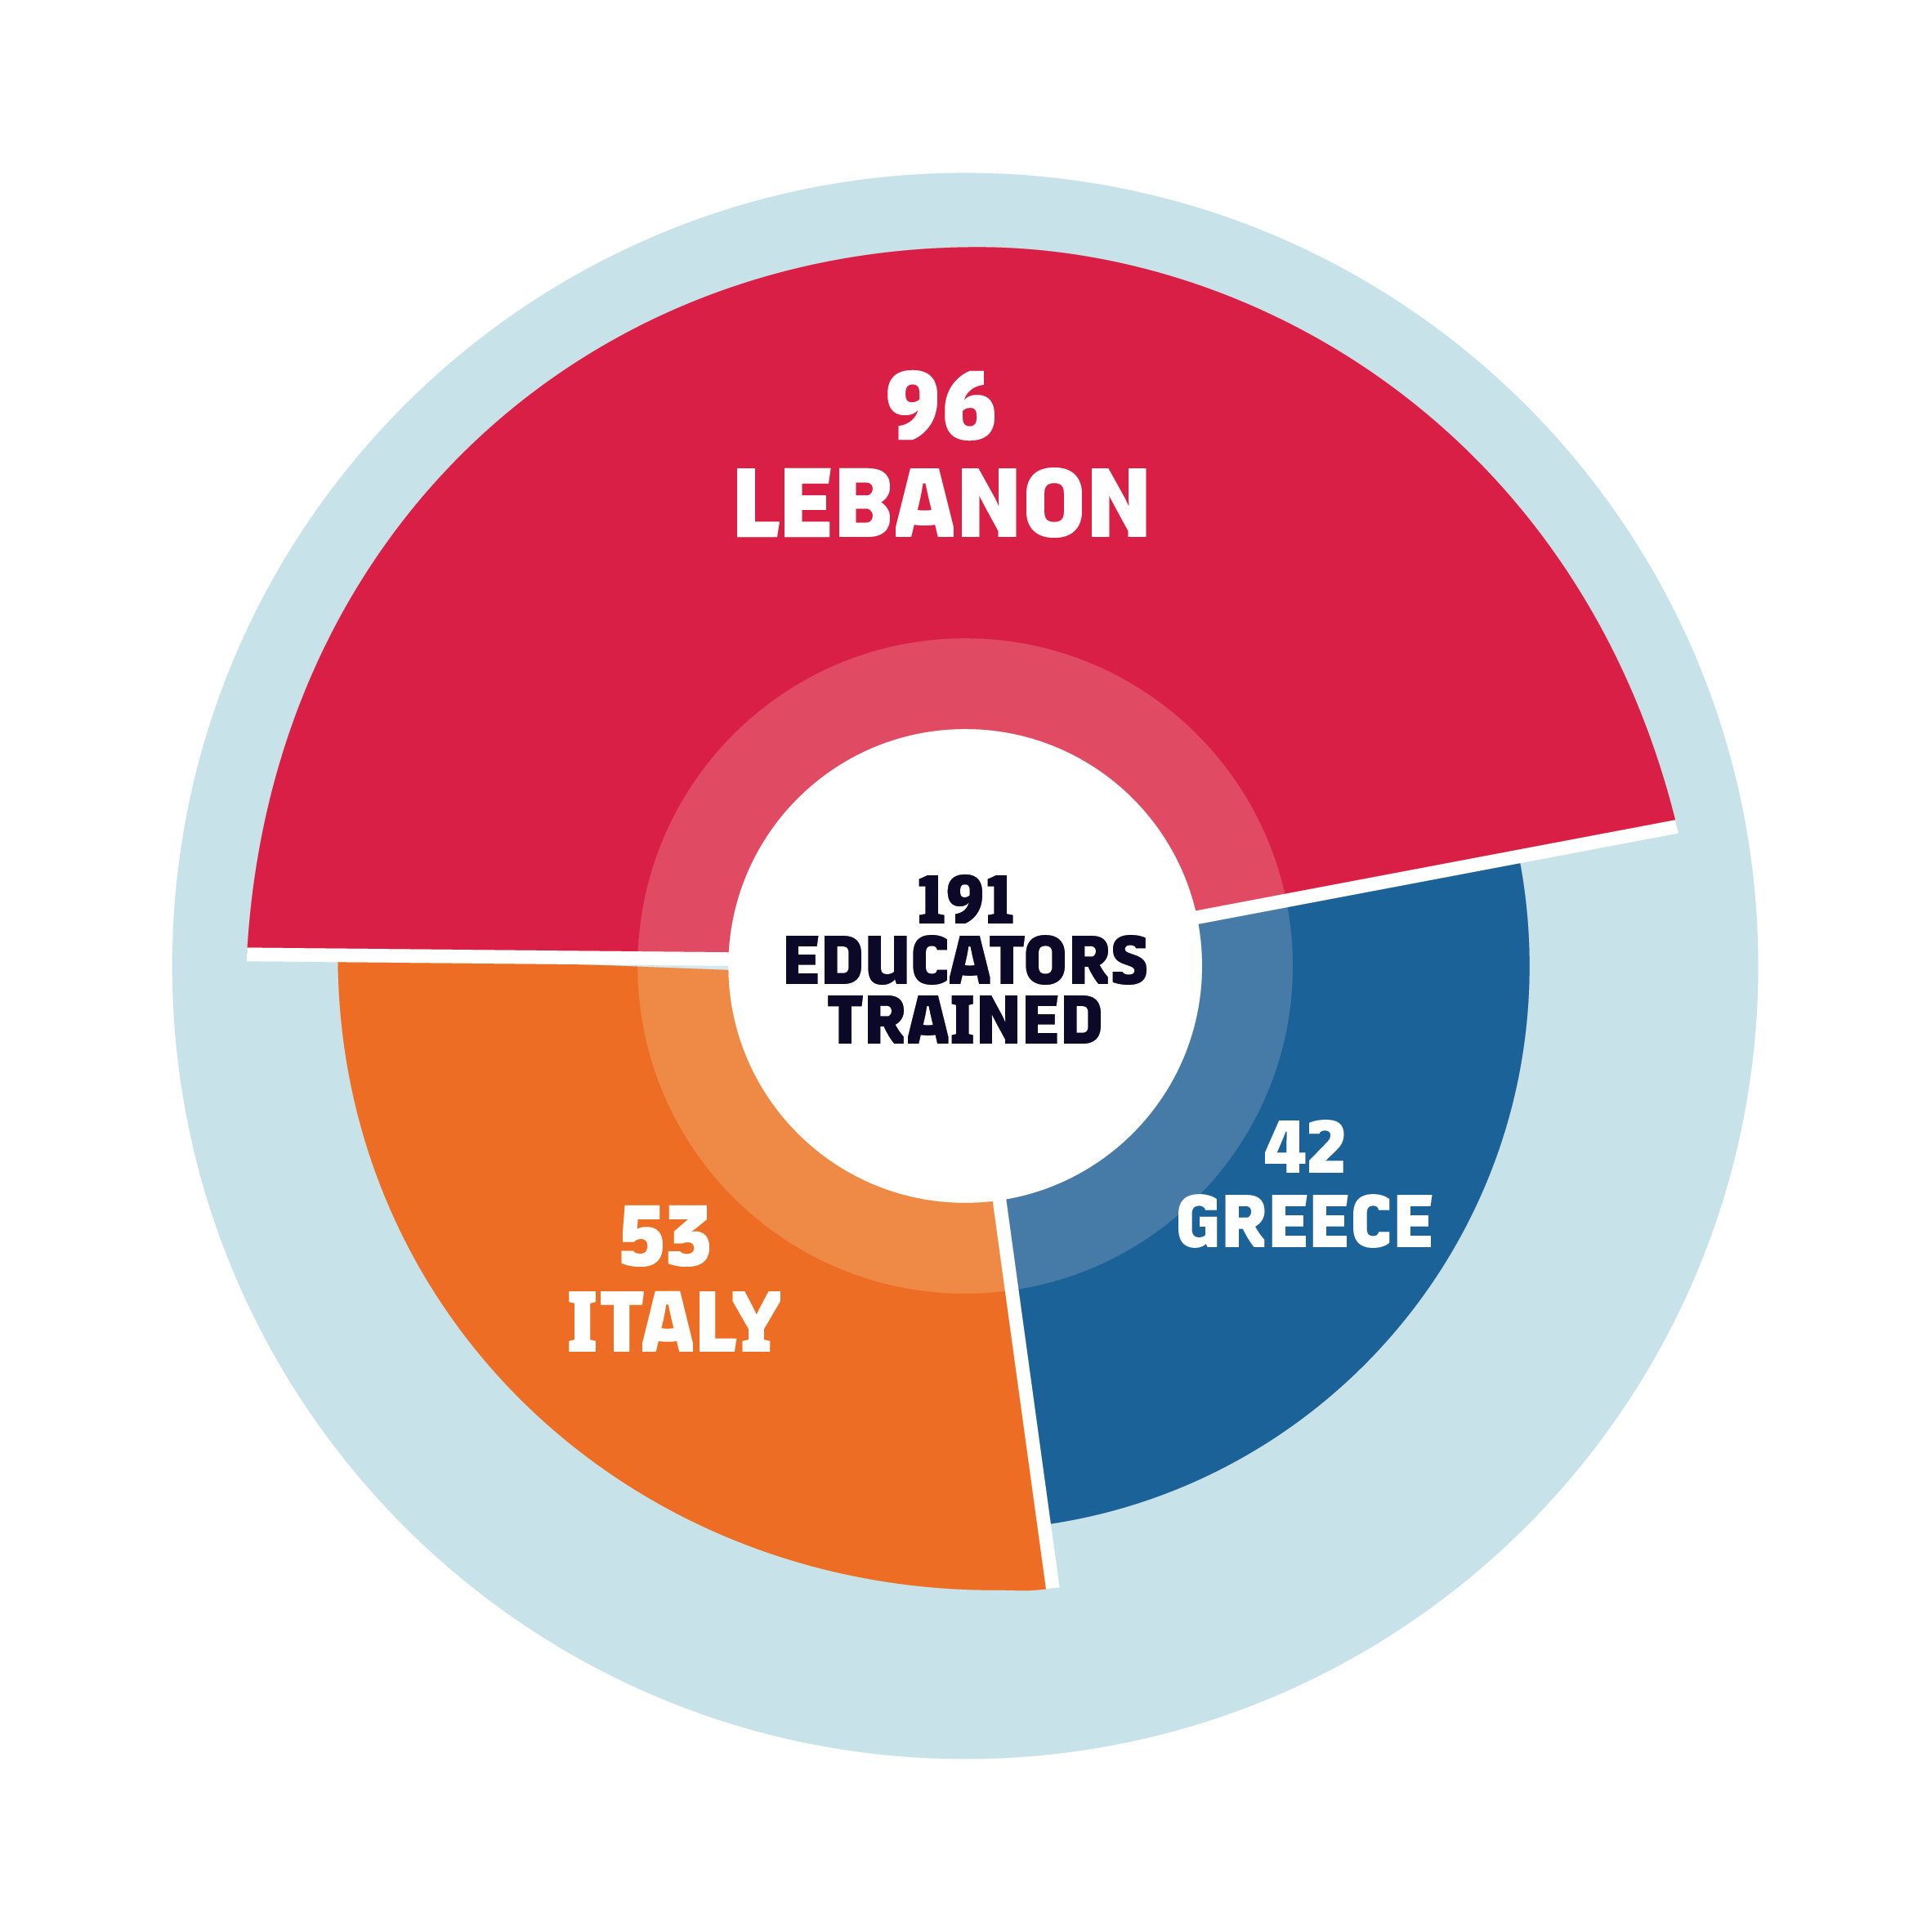 A total of 191 educators have been trained: 53 Italy, 96 Lebanon, 42 Greece